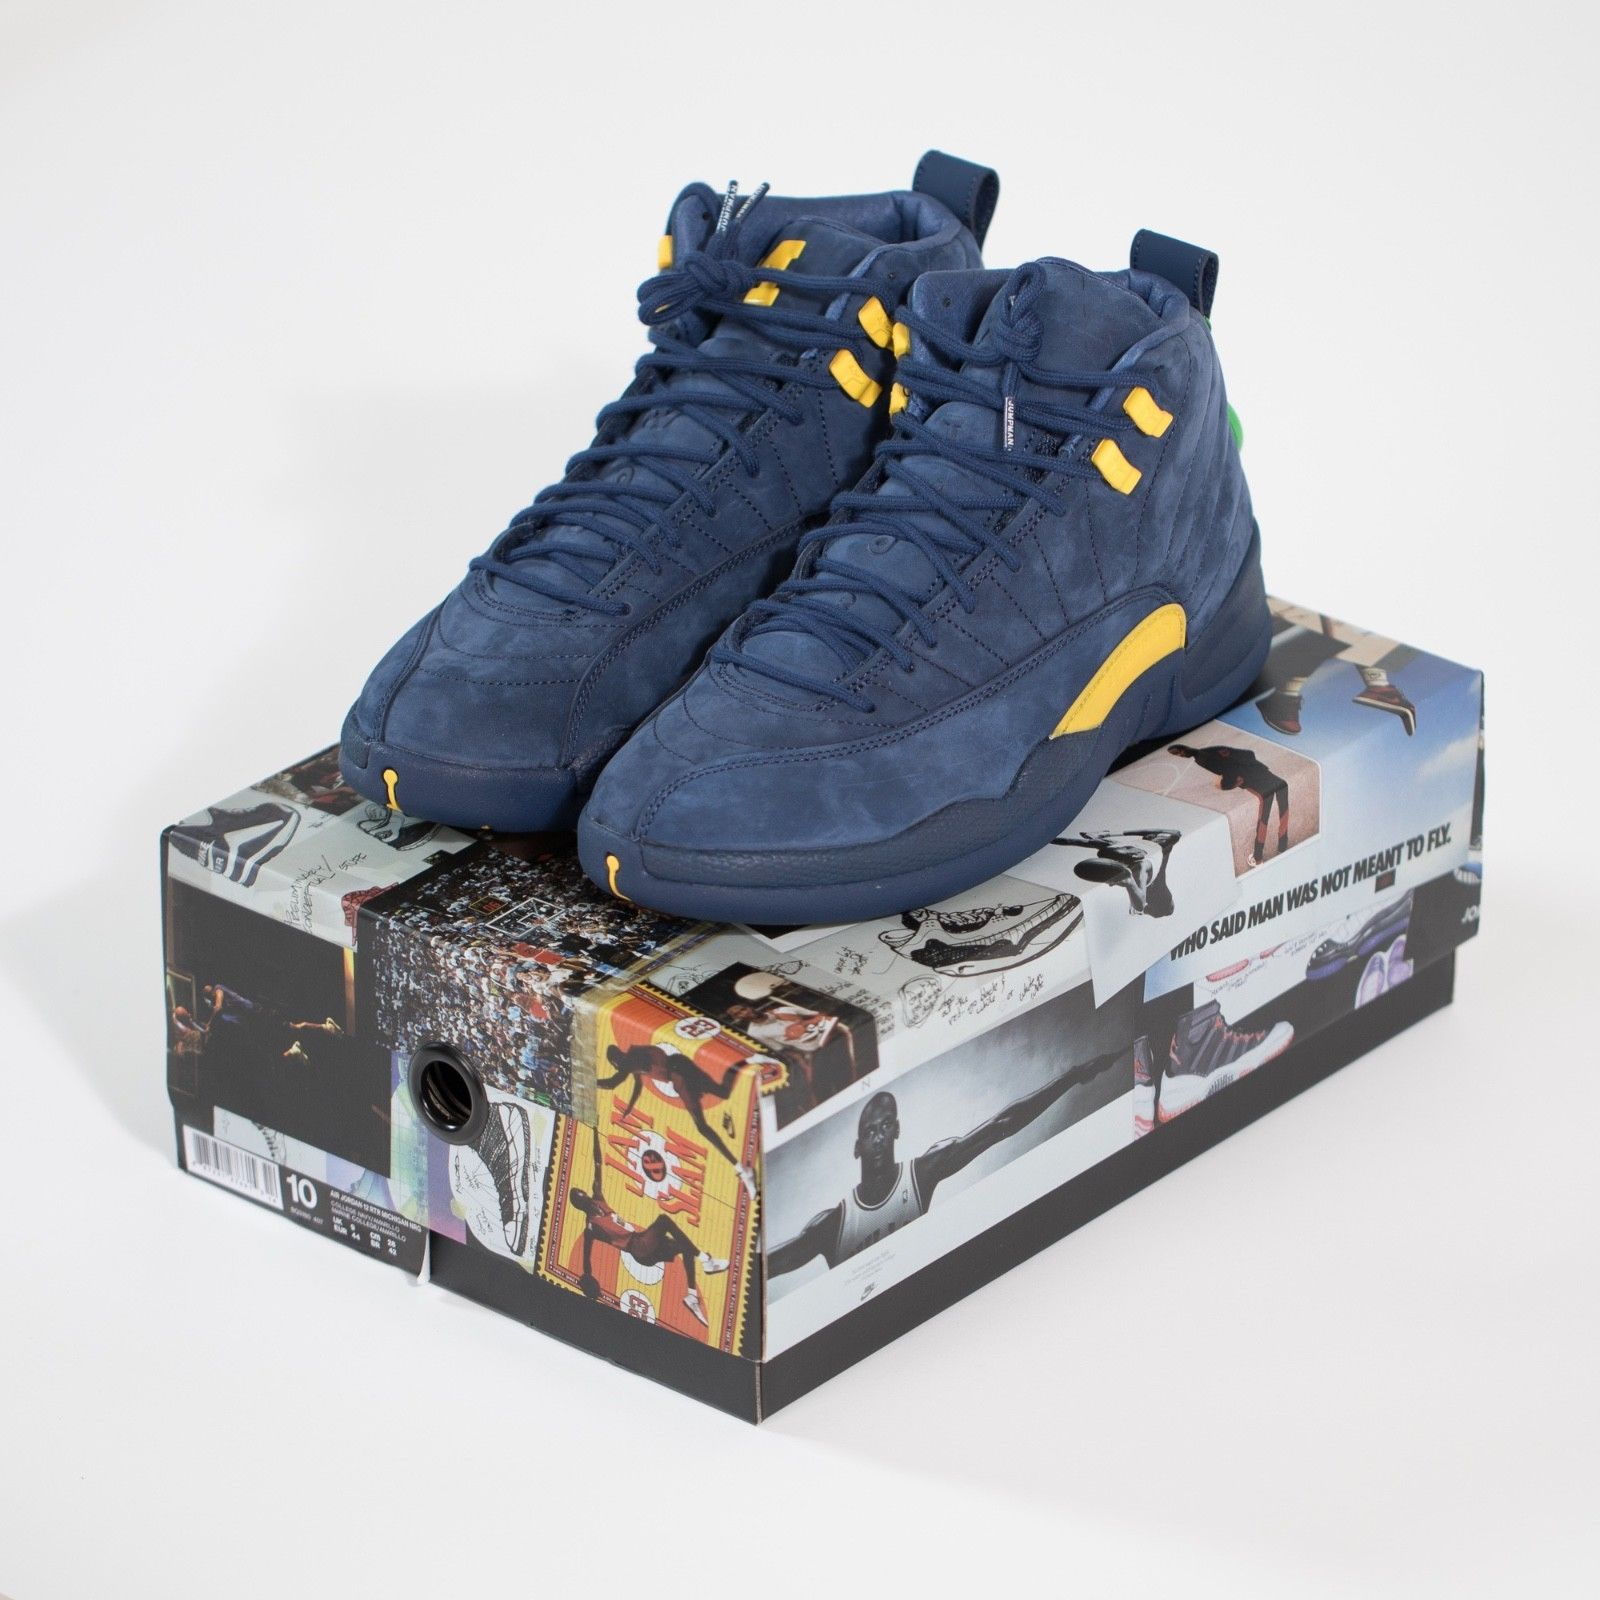 super popular f6fd2 2bcc4 Jordan Michigan 12 DeadStock Size 11 and 26 similar items. S l1600